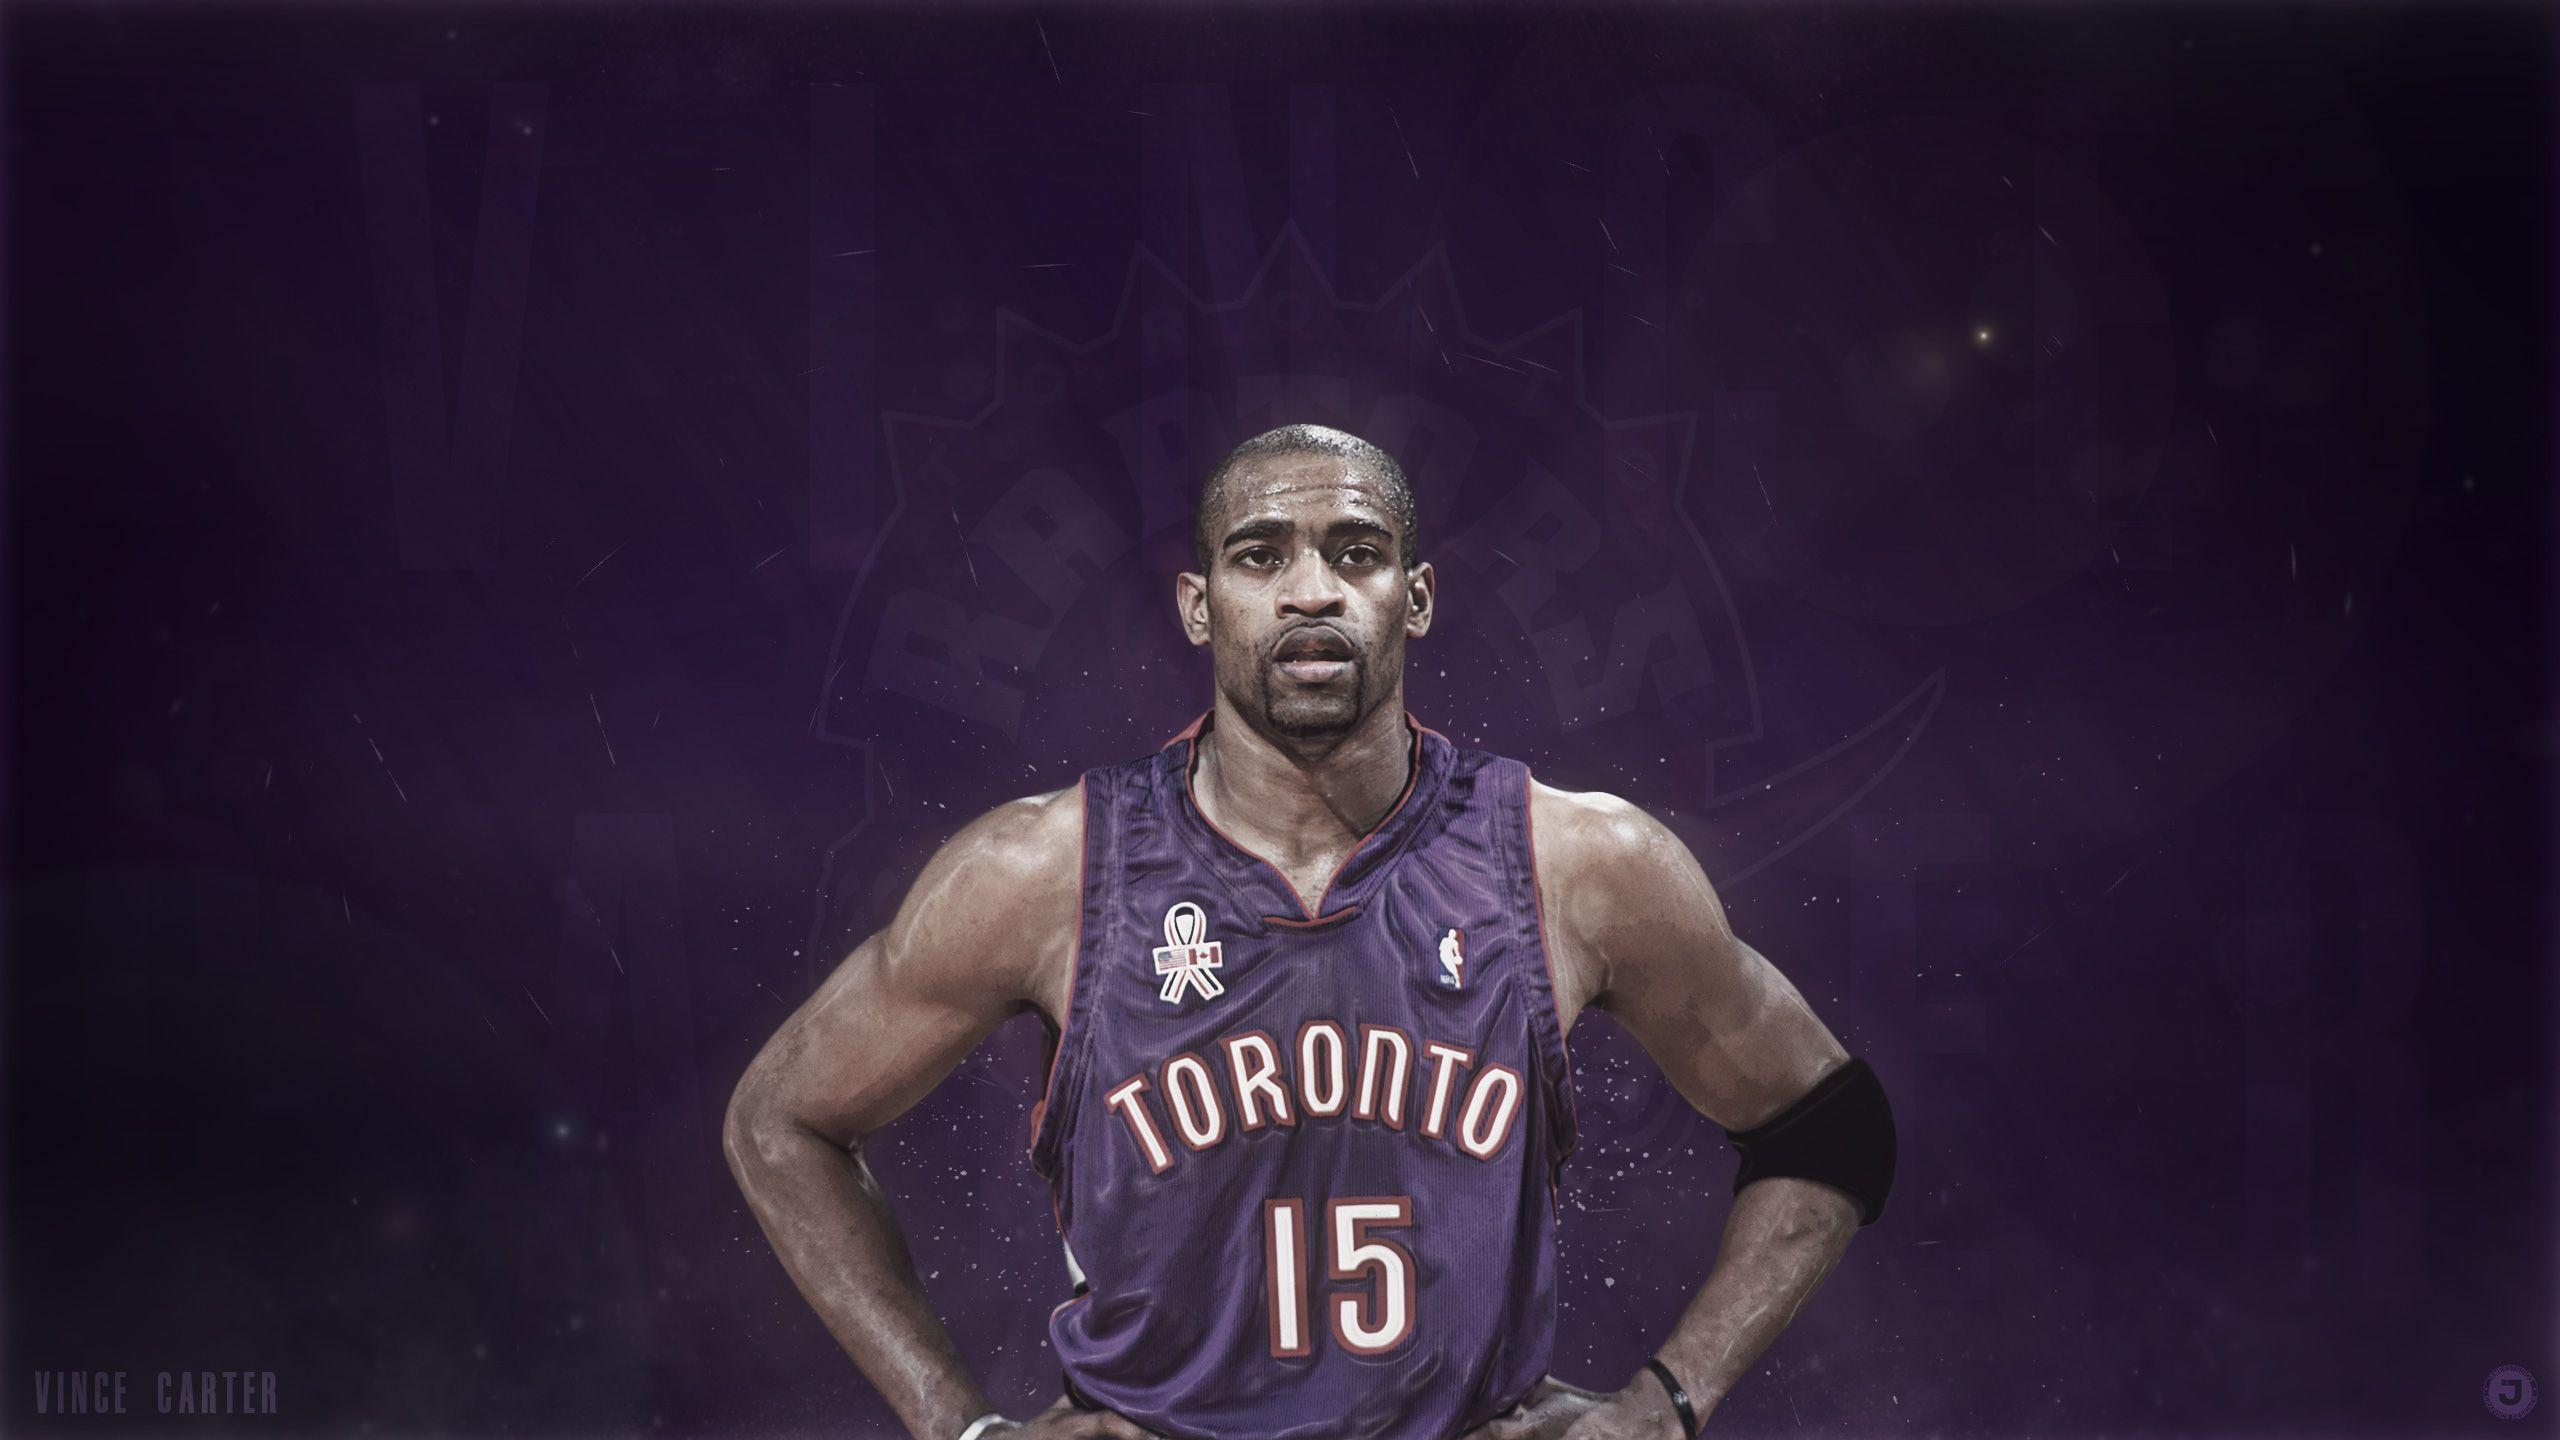 Why Use Vince Carter wallpaper?